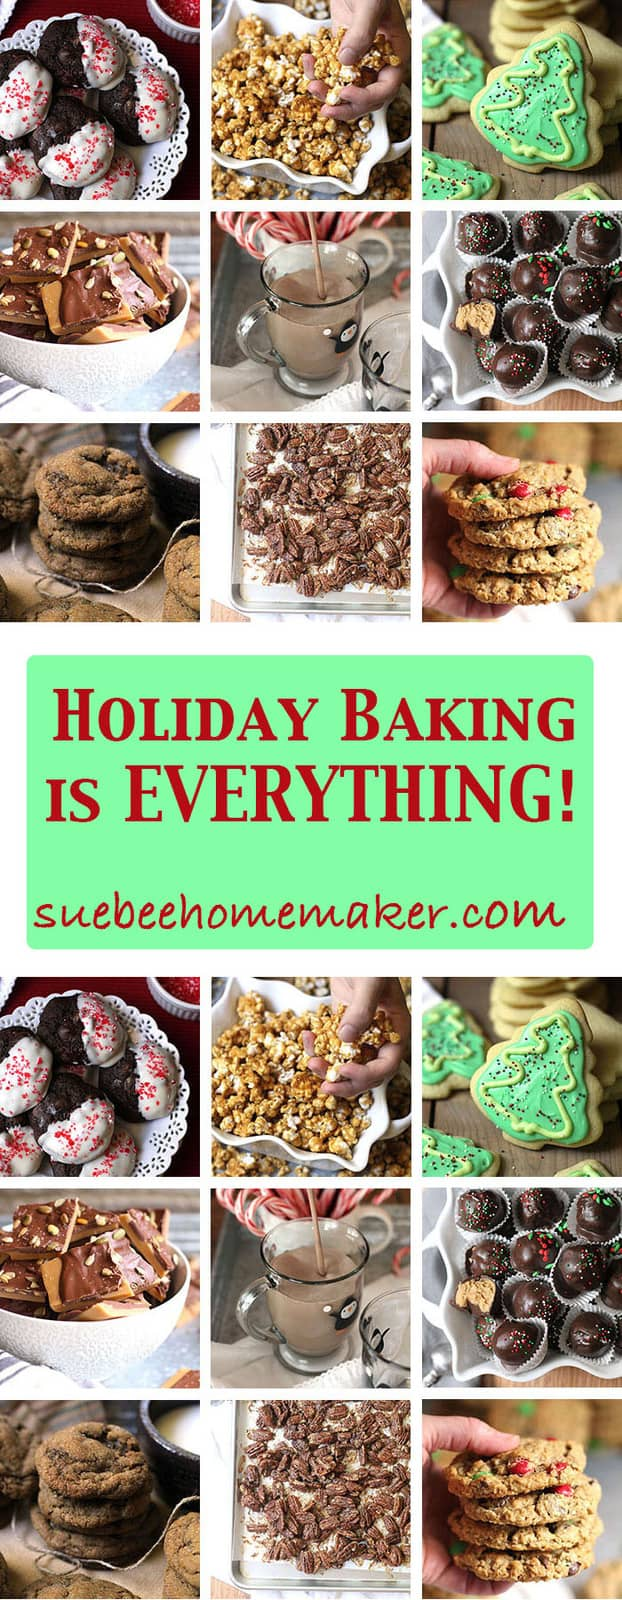 I love to pack my freezer full of Holiday Treats so I'm prepared for family and friends. These can all be prepared in advance and frozen!   suebeehomemaker.com